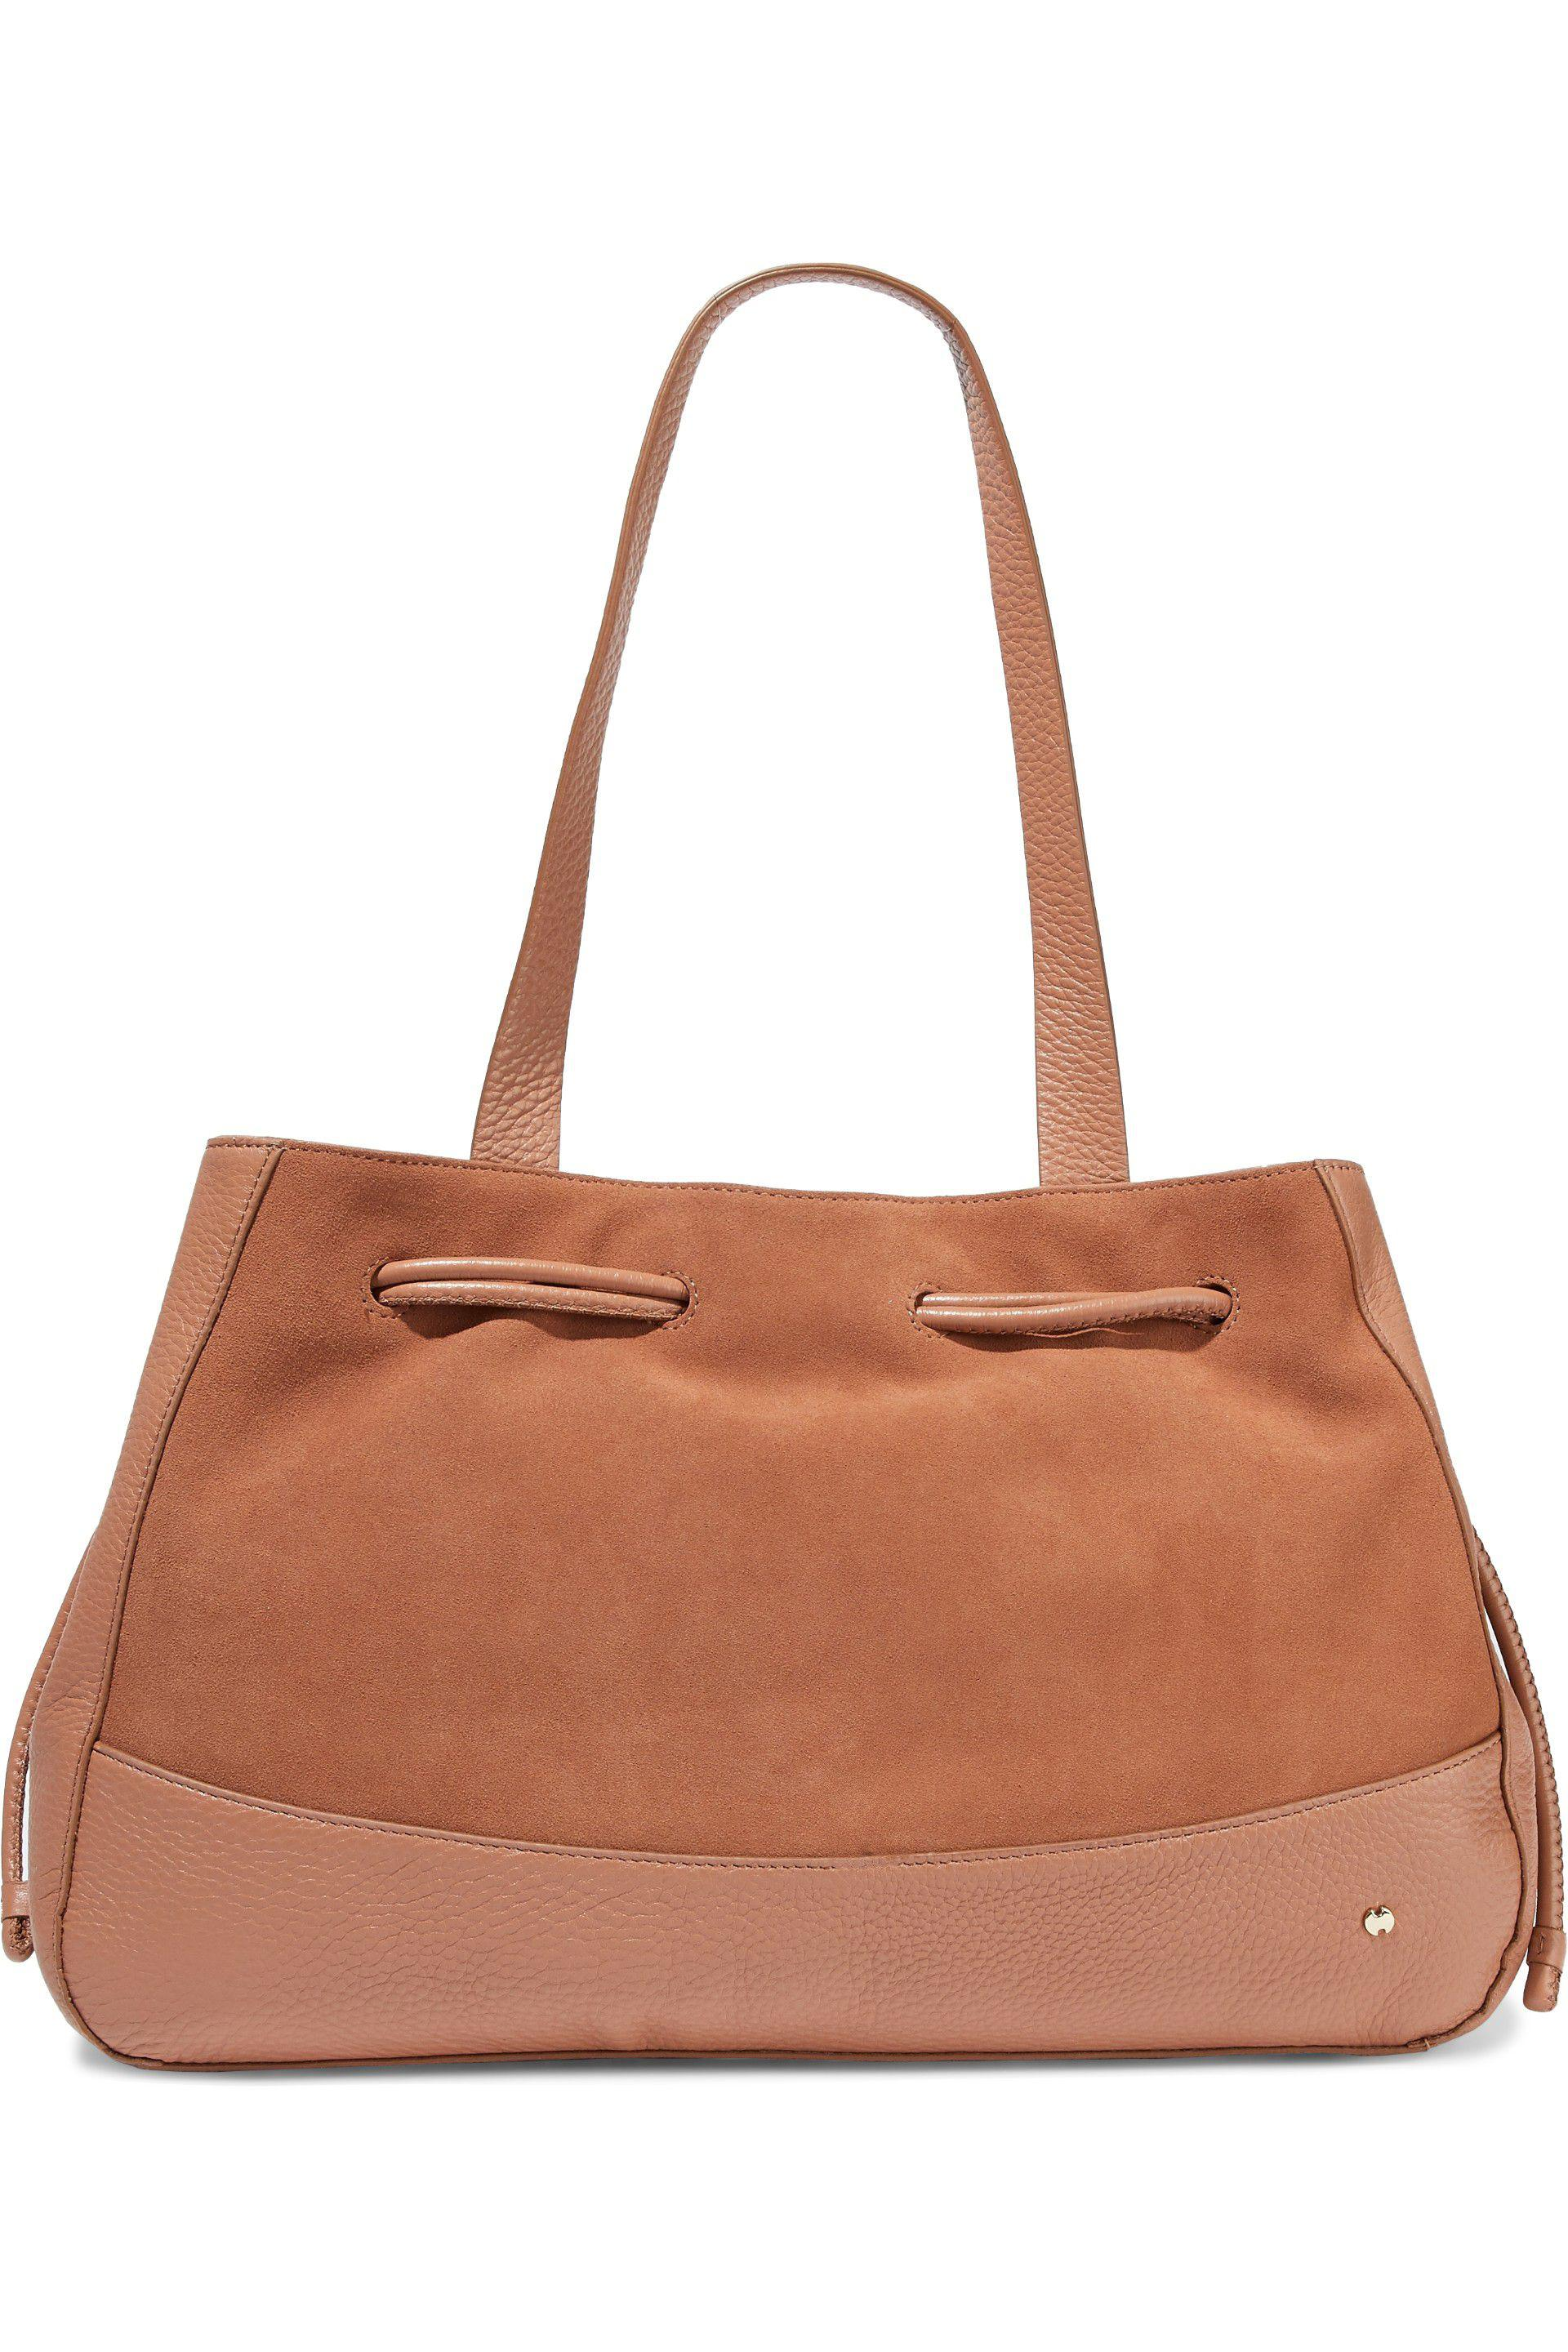 Lyst - Halston Heritage Suede And Textured-leather Tote in Brown 9b827788dfbf3